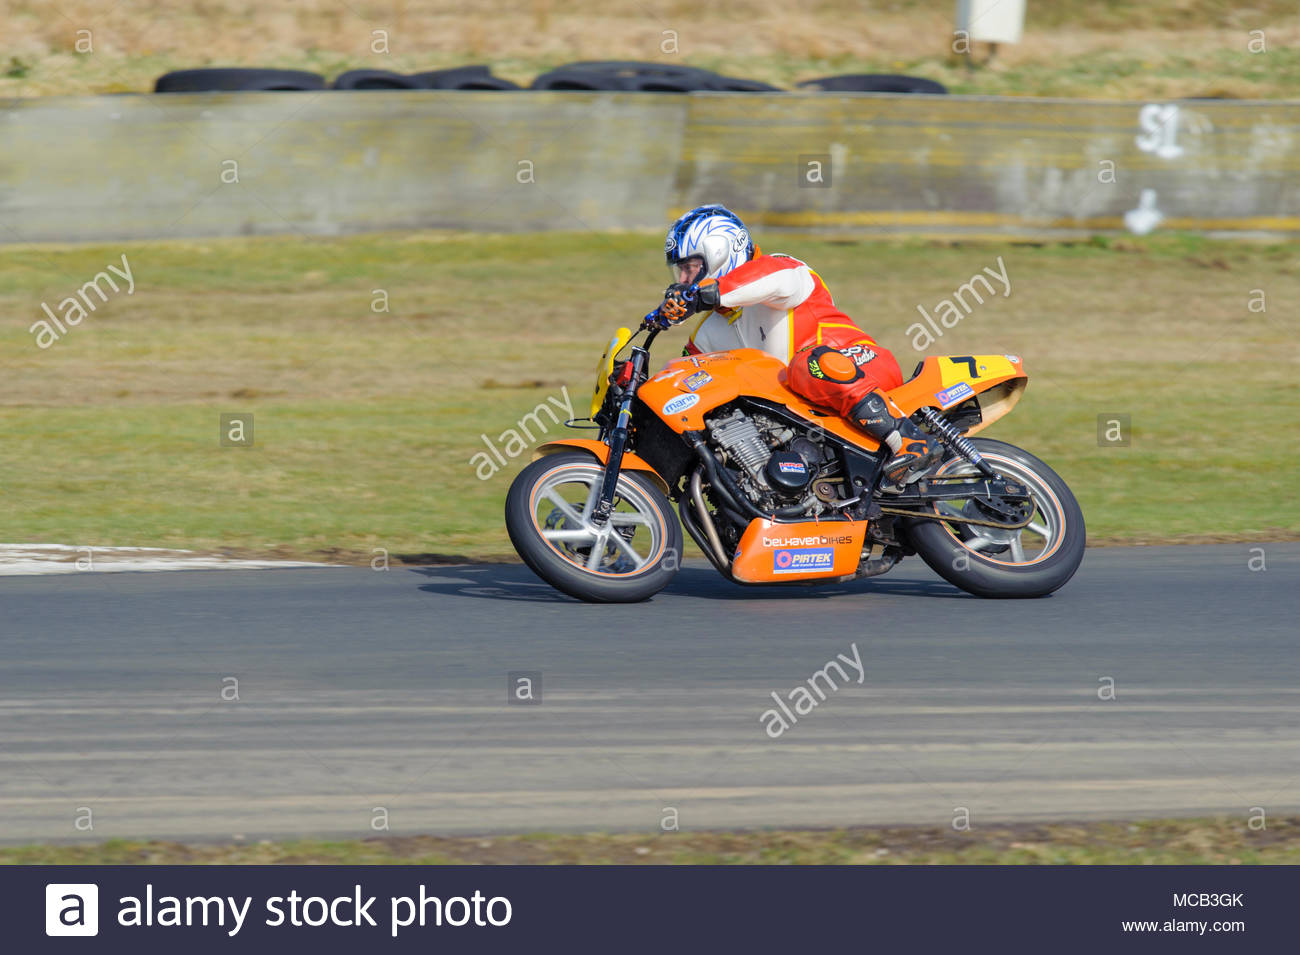 Dunfermline, UK. 15 April, 2018.   Colvin Denholm tips into Butcher's during a CB500s race at Knockhill circuit. Bike races at Knockhill represent points-scoring rounds of both the KMSC and Scottish Bike Racing Championships. Roger Gaisford/Alamy Live News. - Stock Image